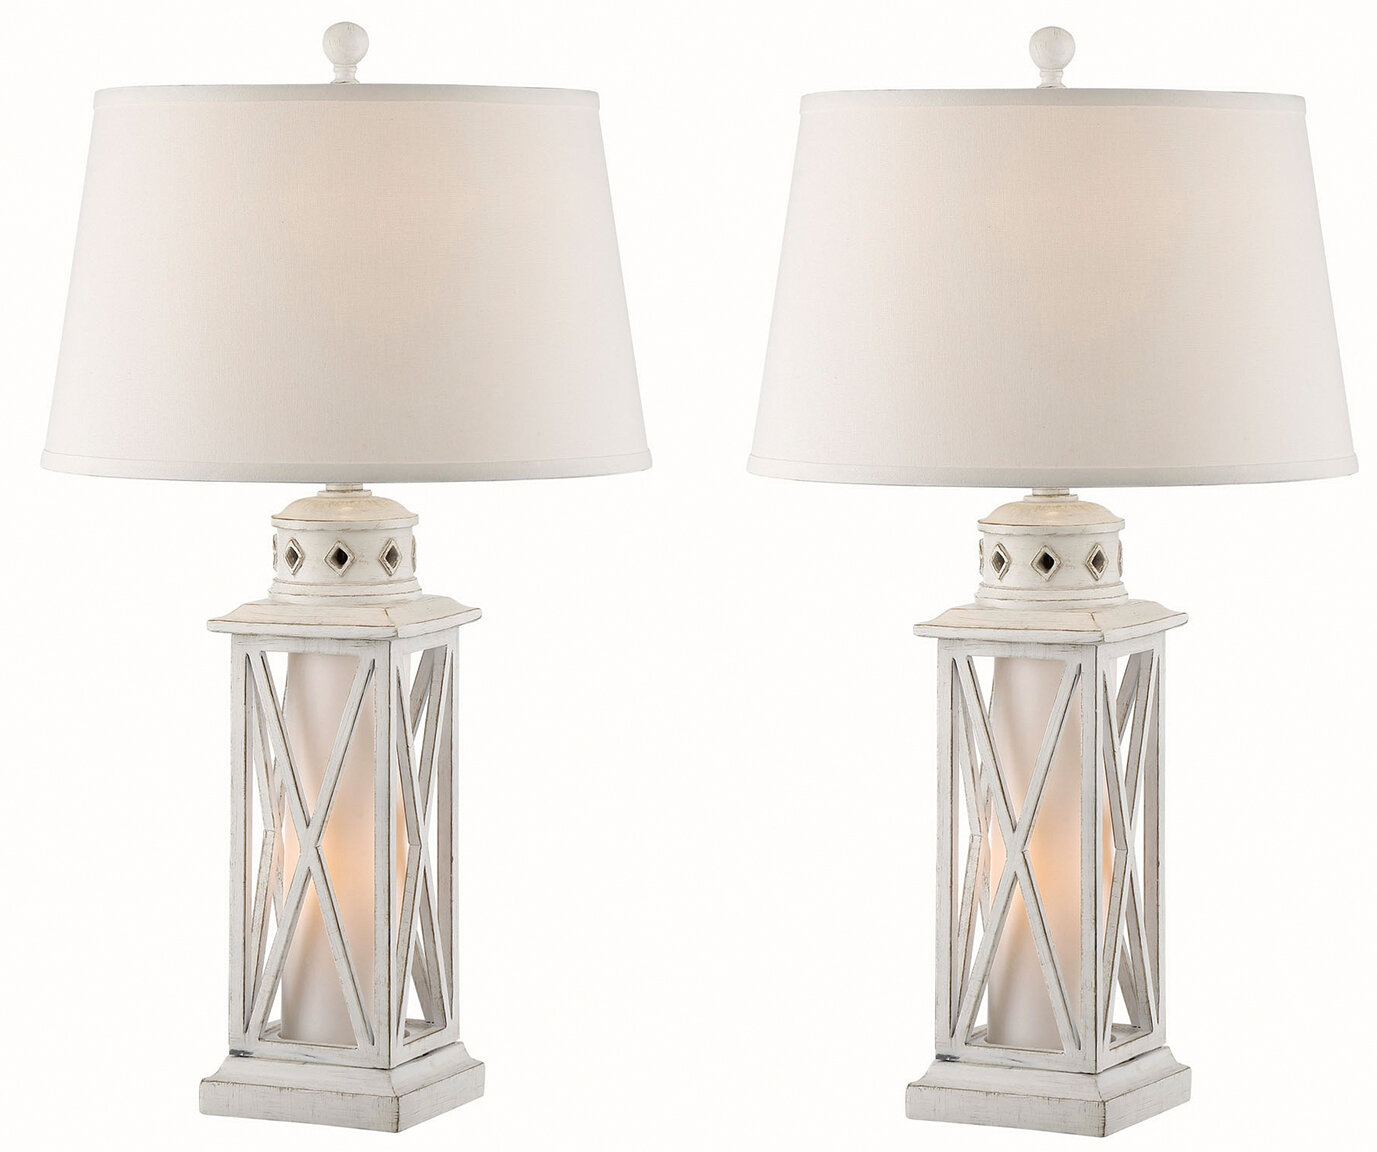 "Cantrell Lantern 8"" Standard Table Lamp Set"